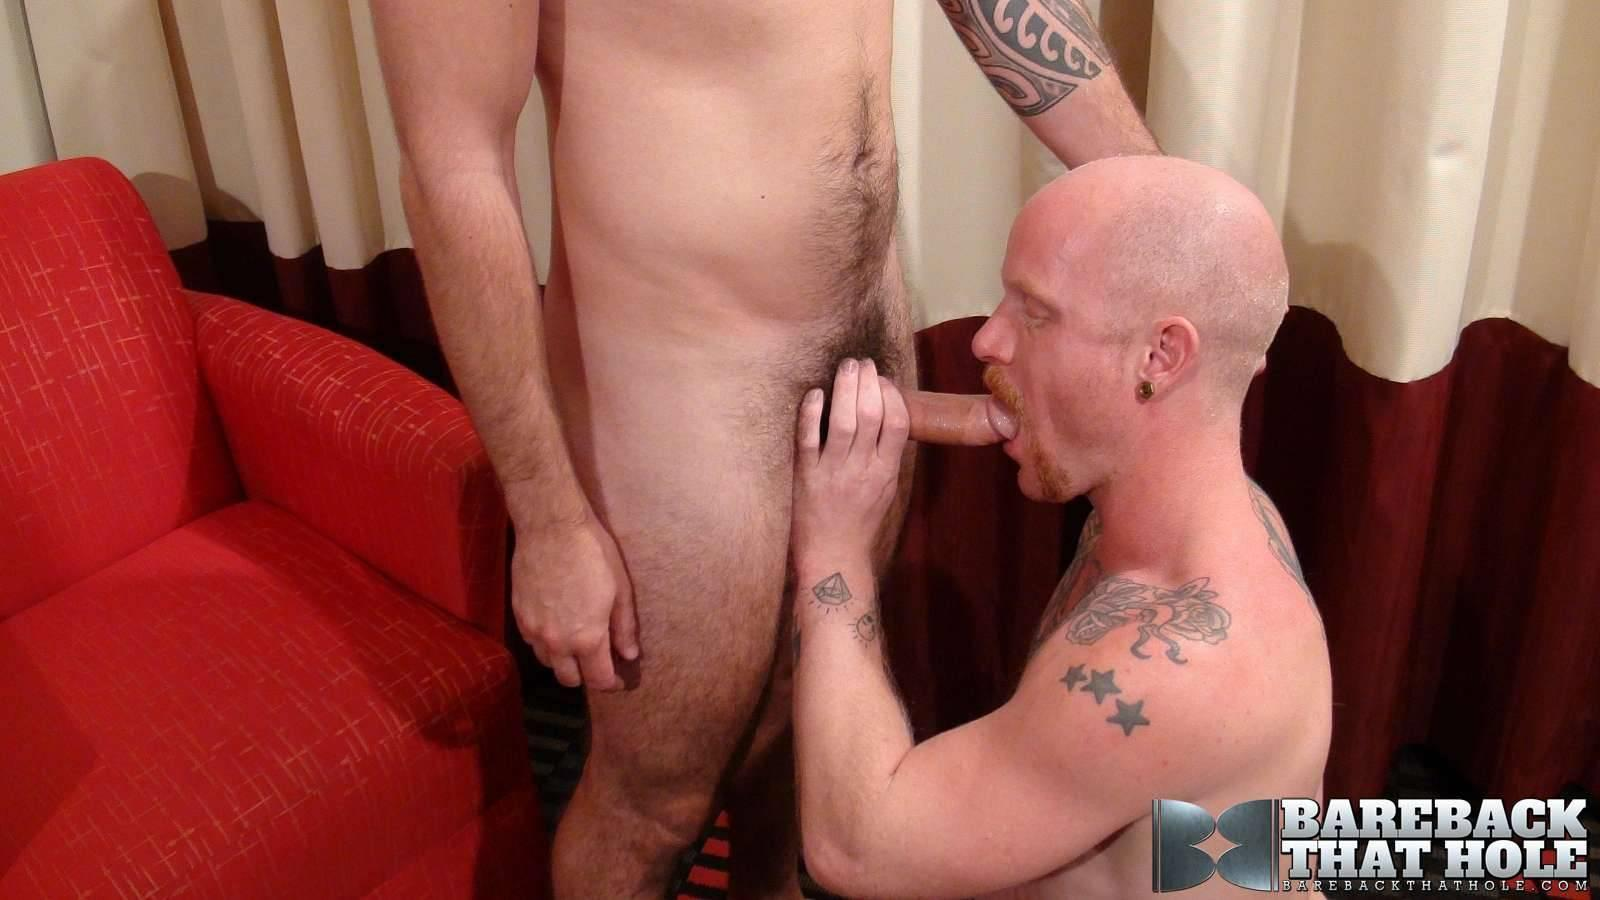 Bareback That Hole Cam Christou and Brock Rustin Redhead Ginger Gets Barebacked By A Big Cock Amateur Gay Porn 01 Redhead Ginger Brock Rustin Taking A Huge Bareback Load